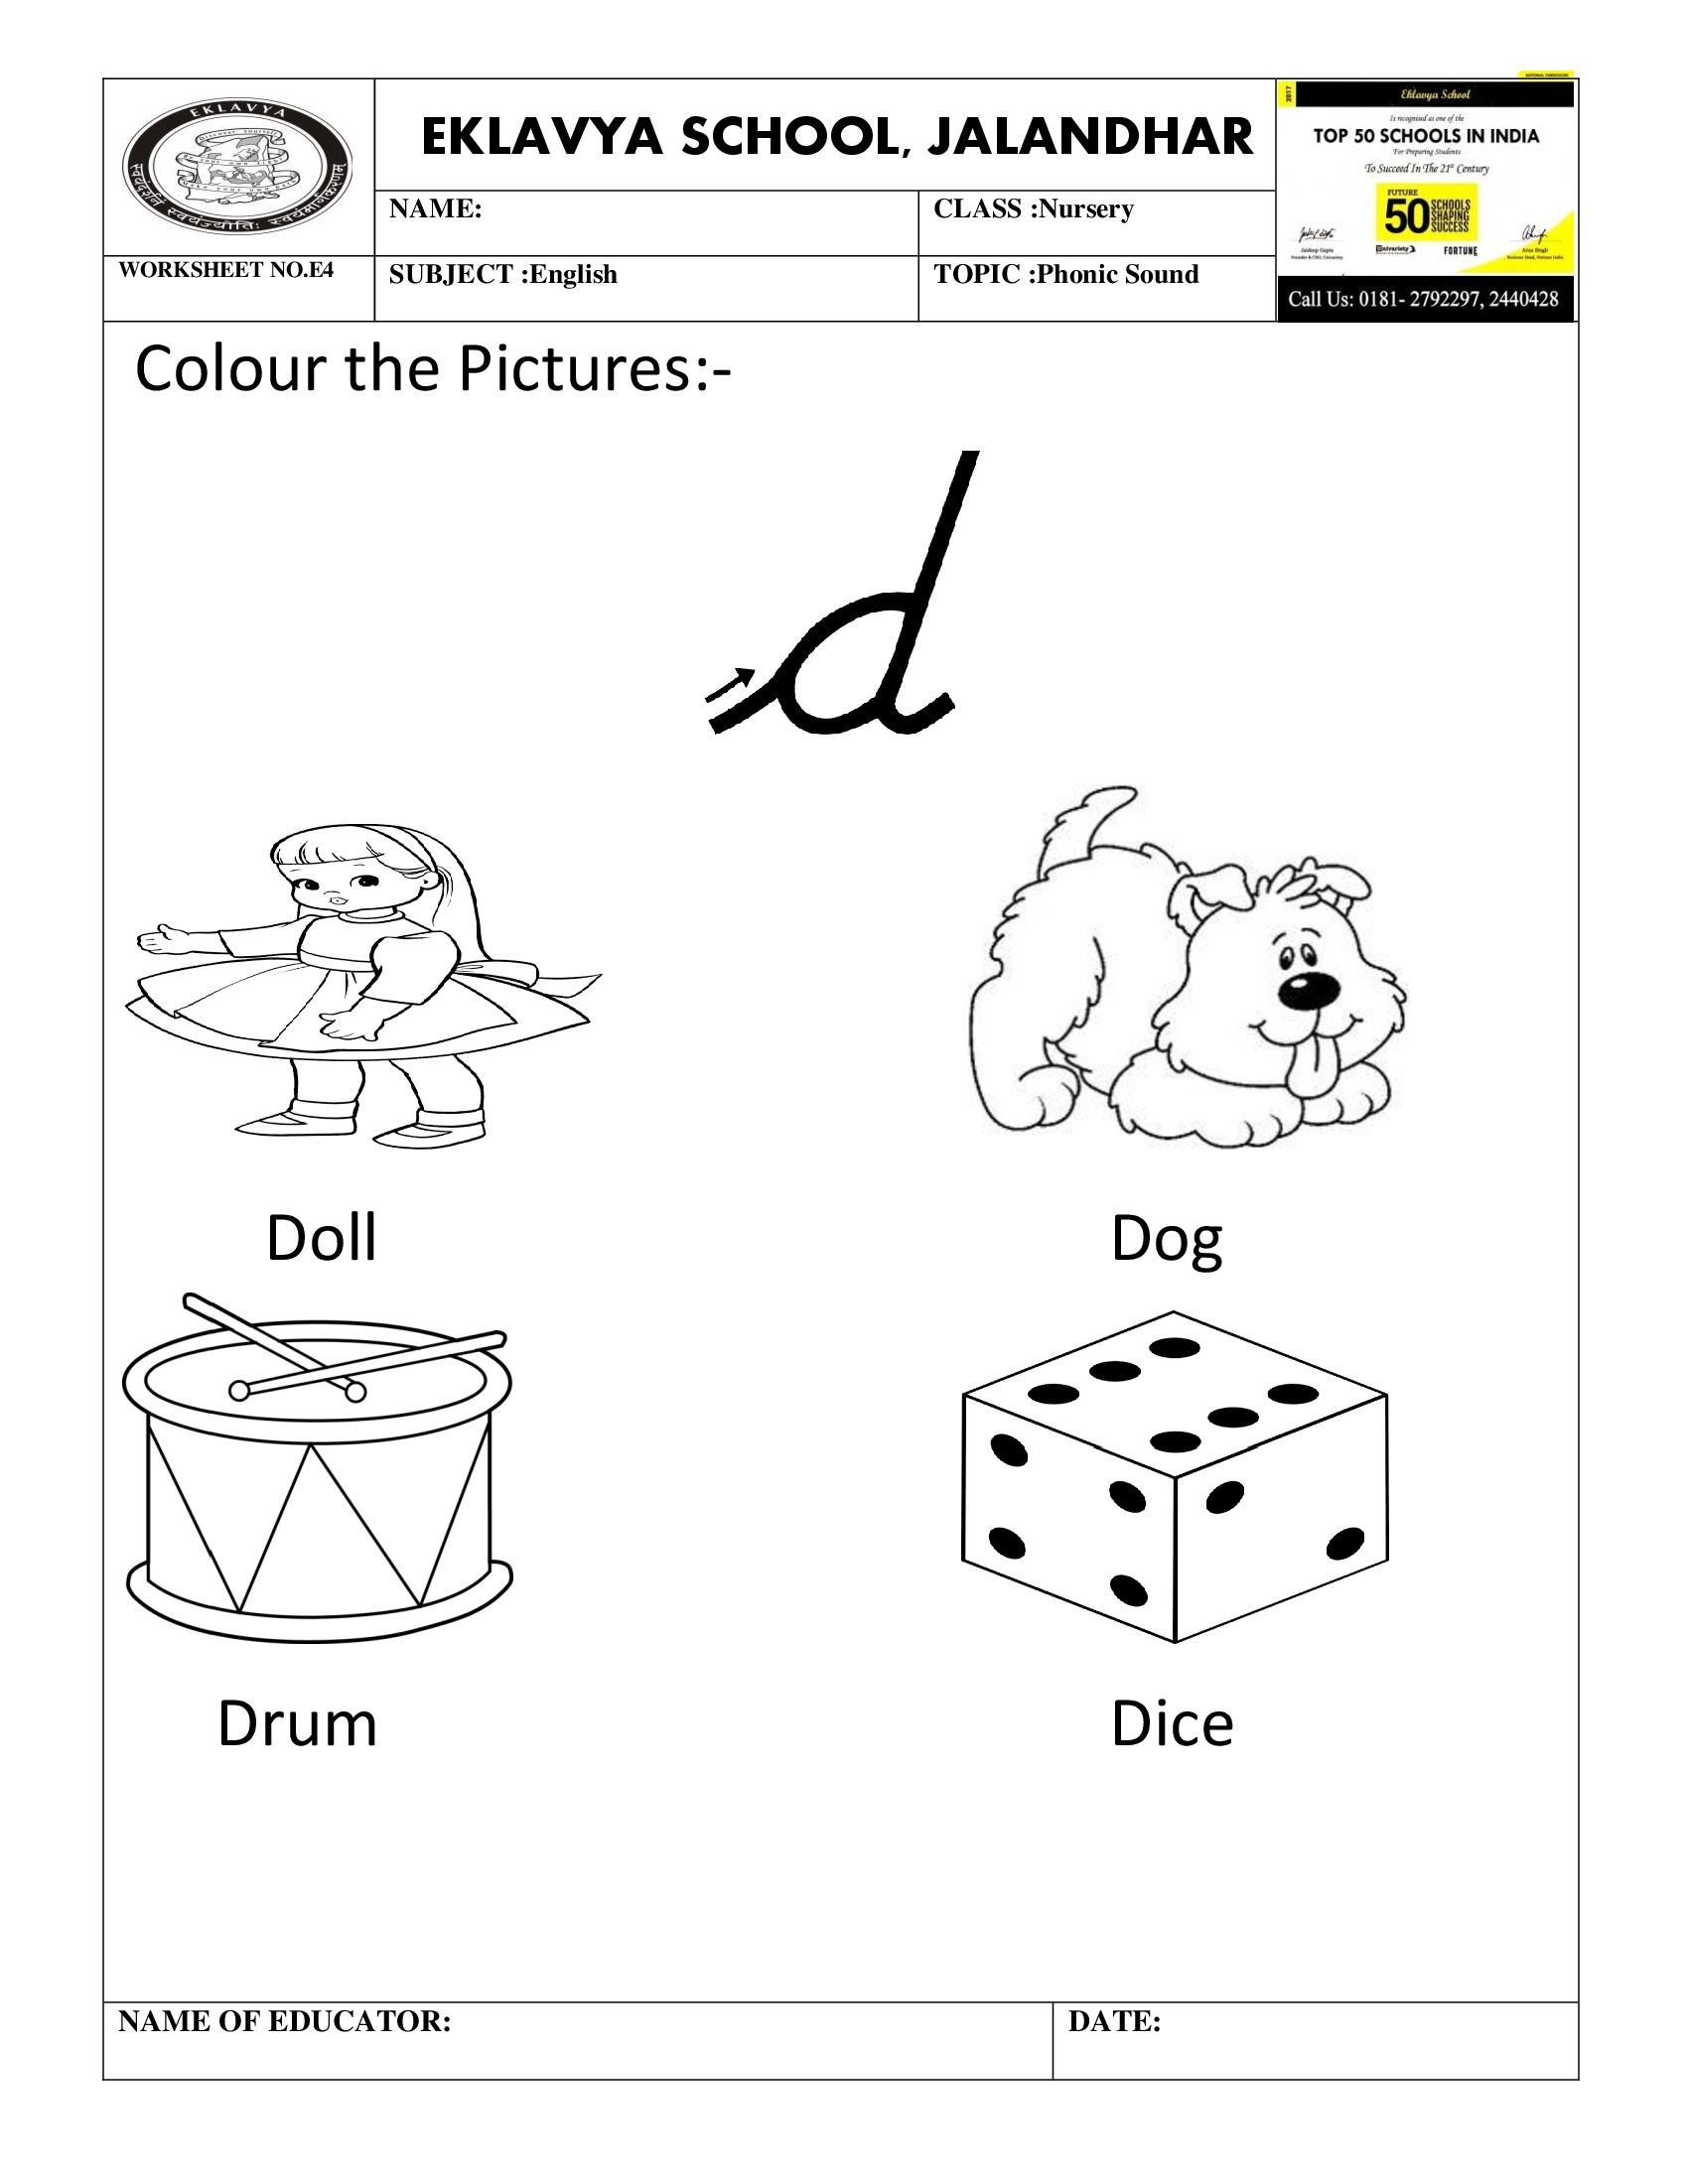 Worksheet On Phonic Sound D